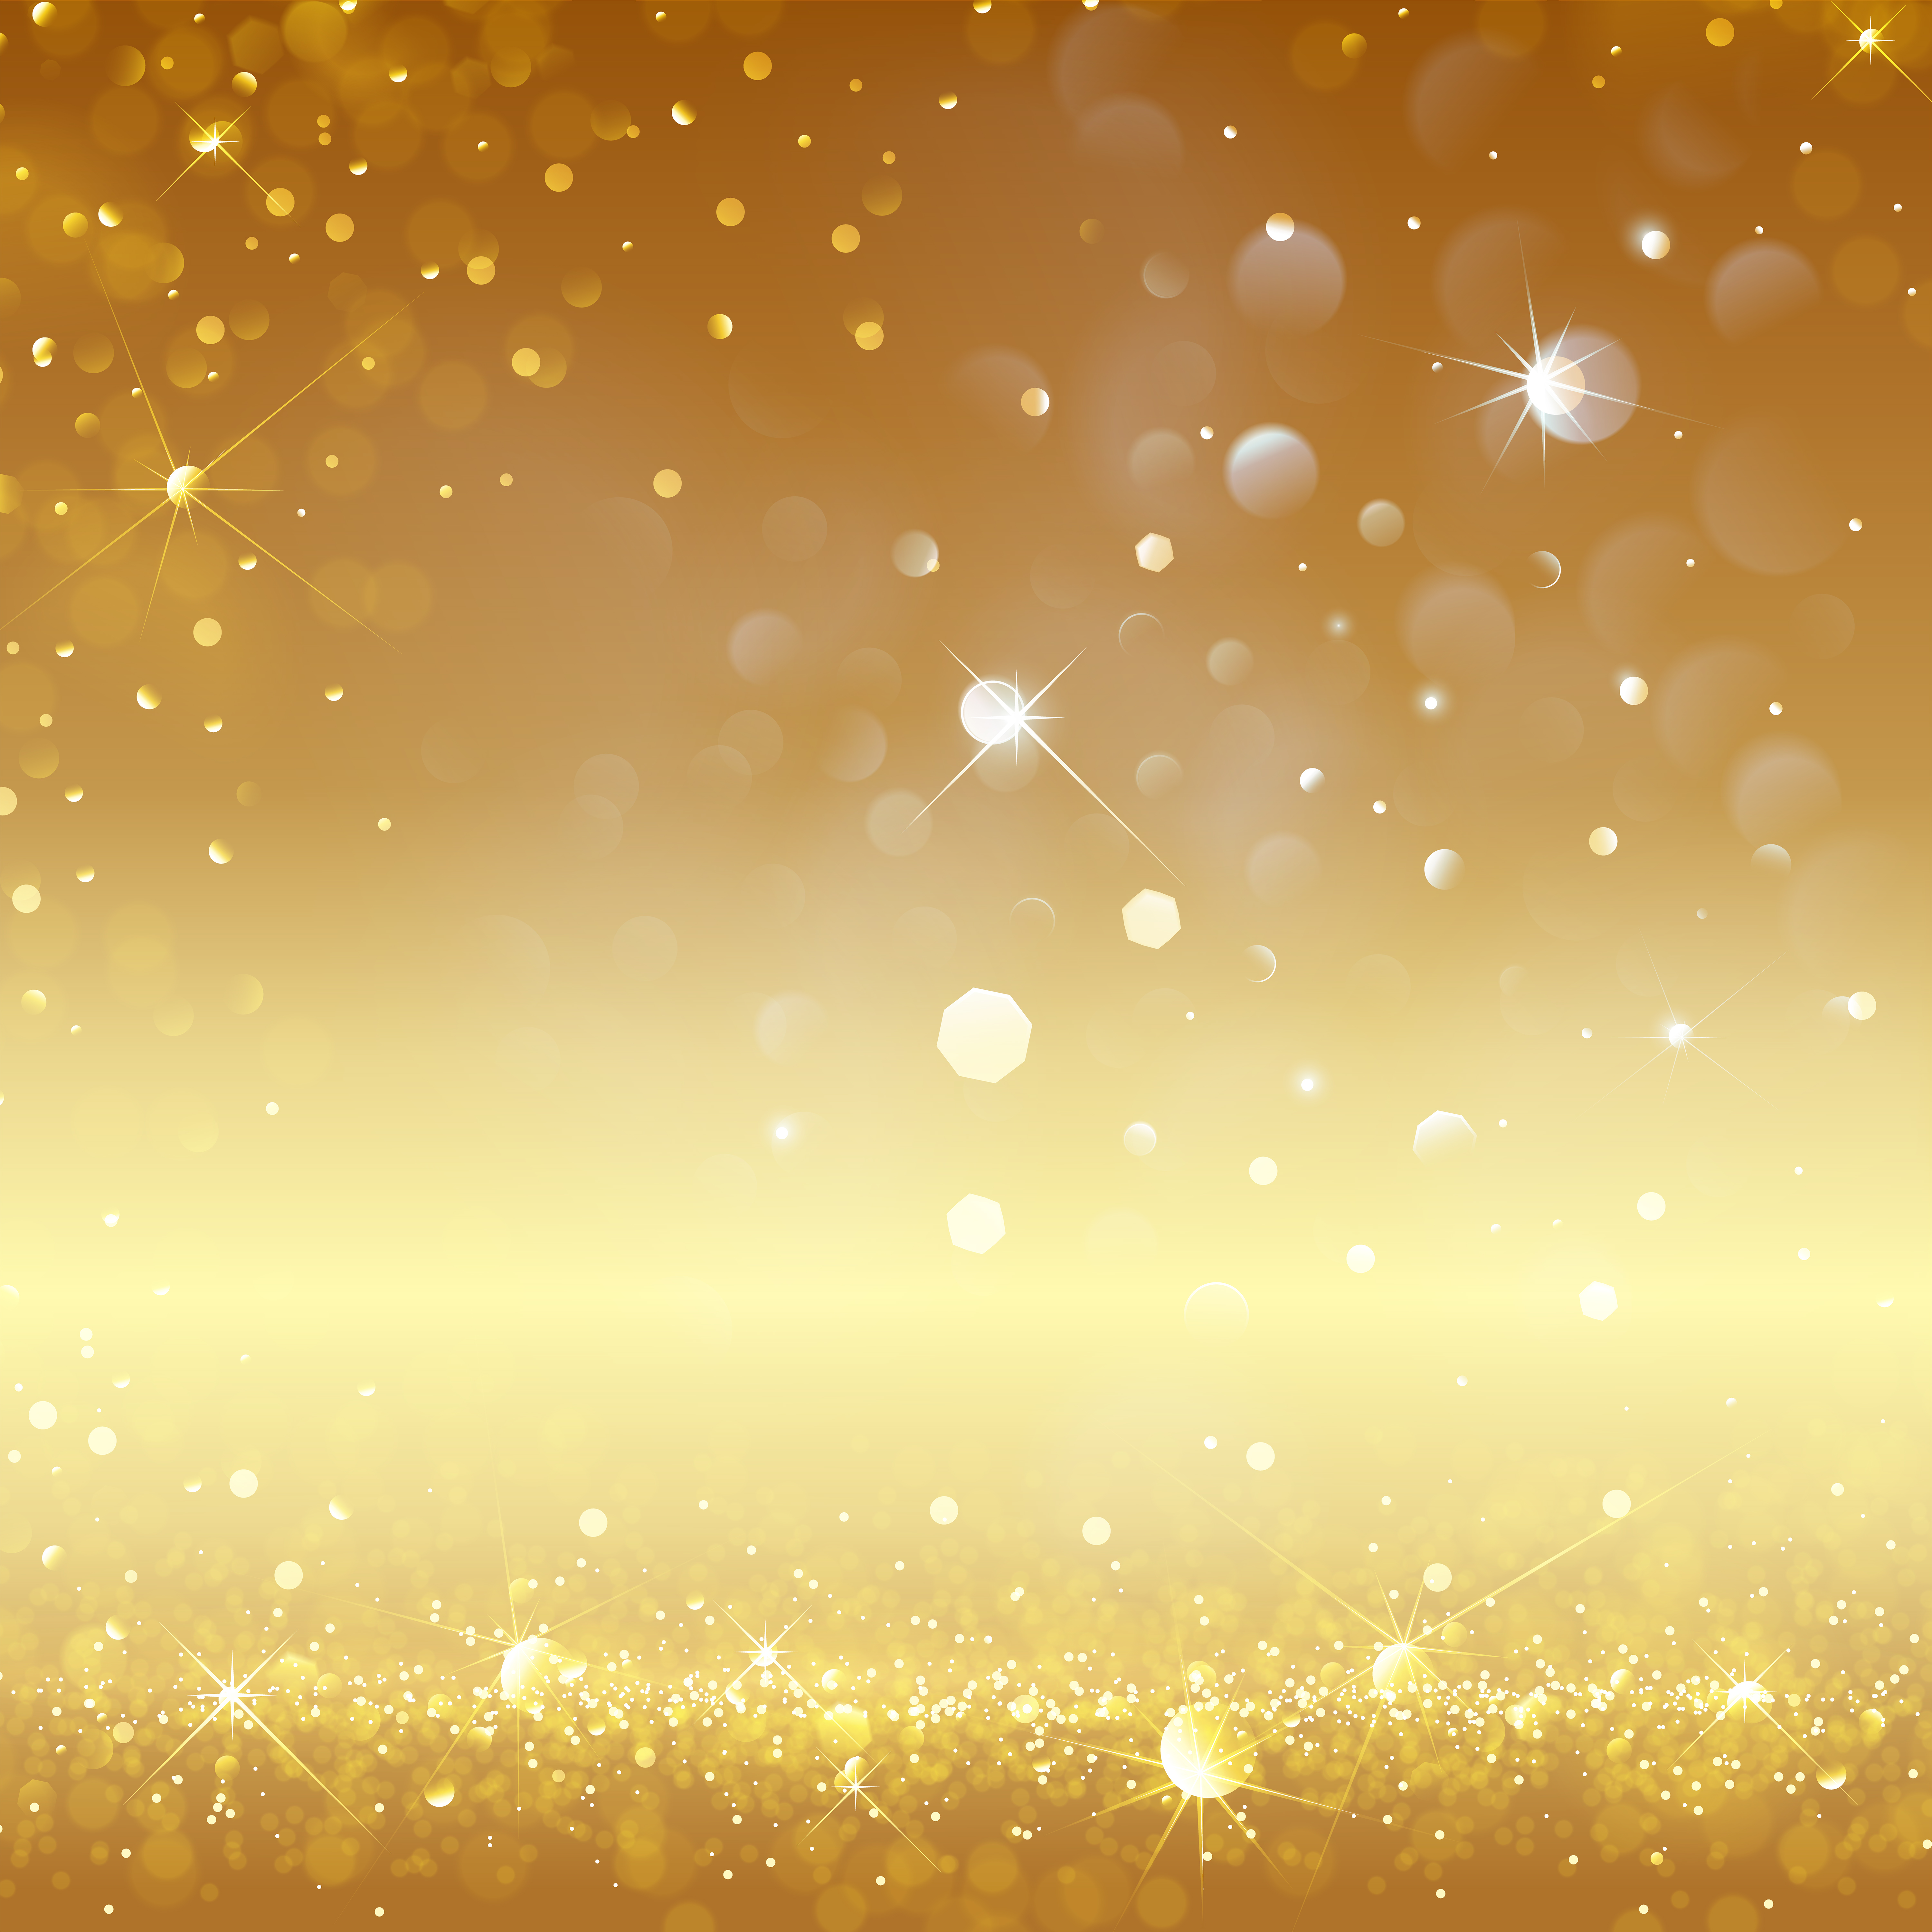 Gold Shining Background Gallery Yopriceville   High Quality 6000x5999